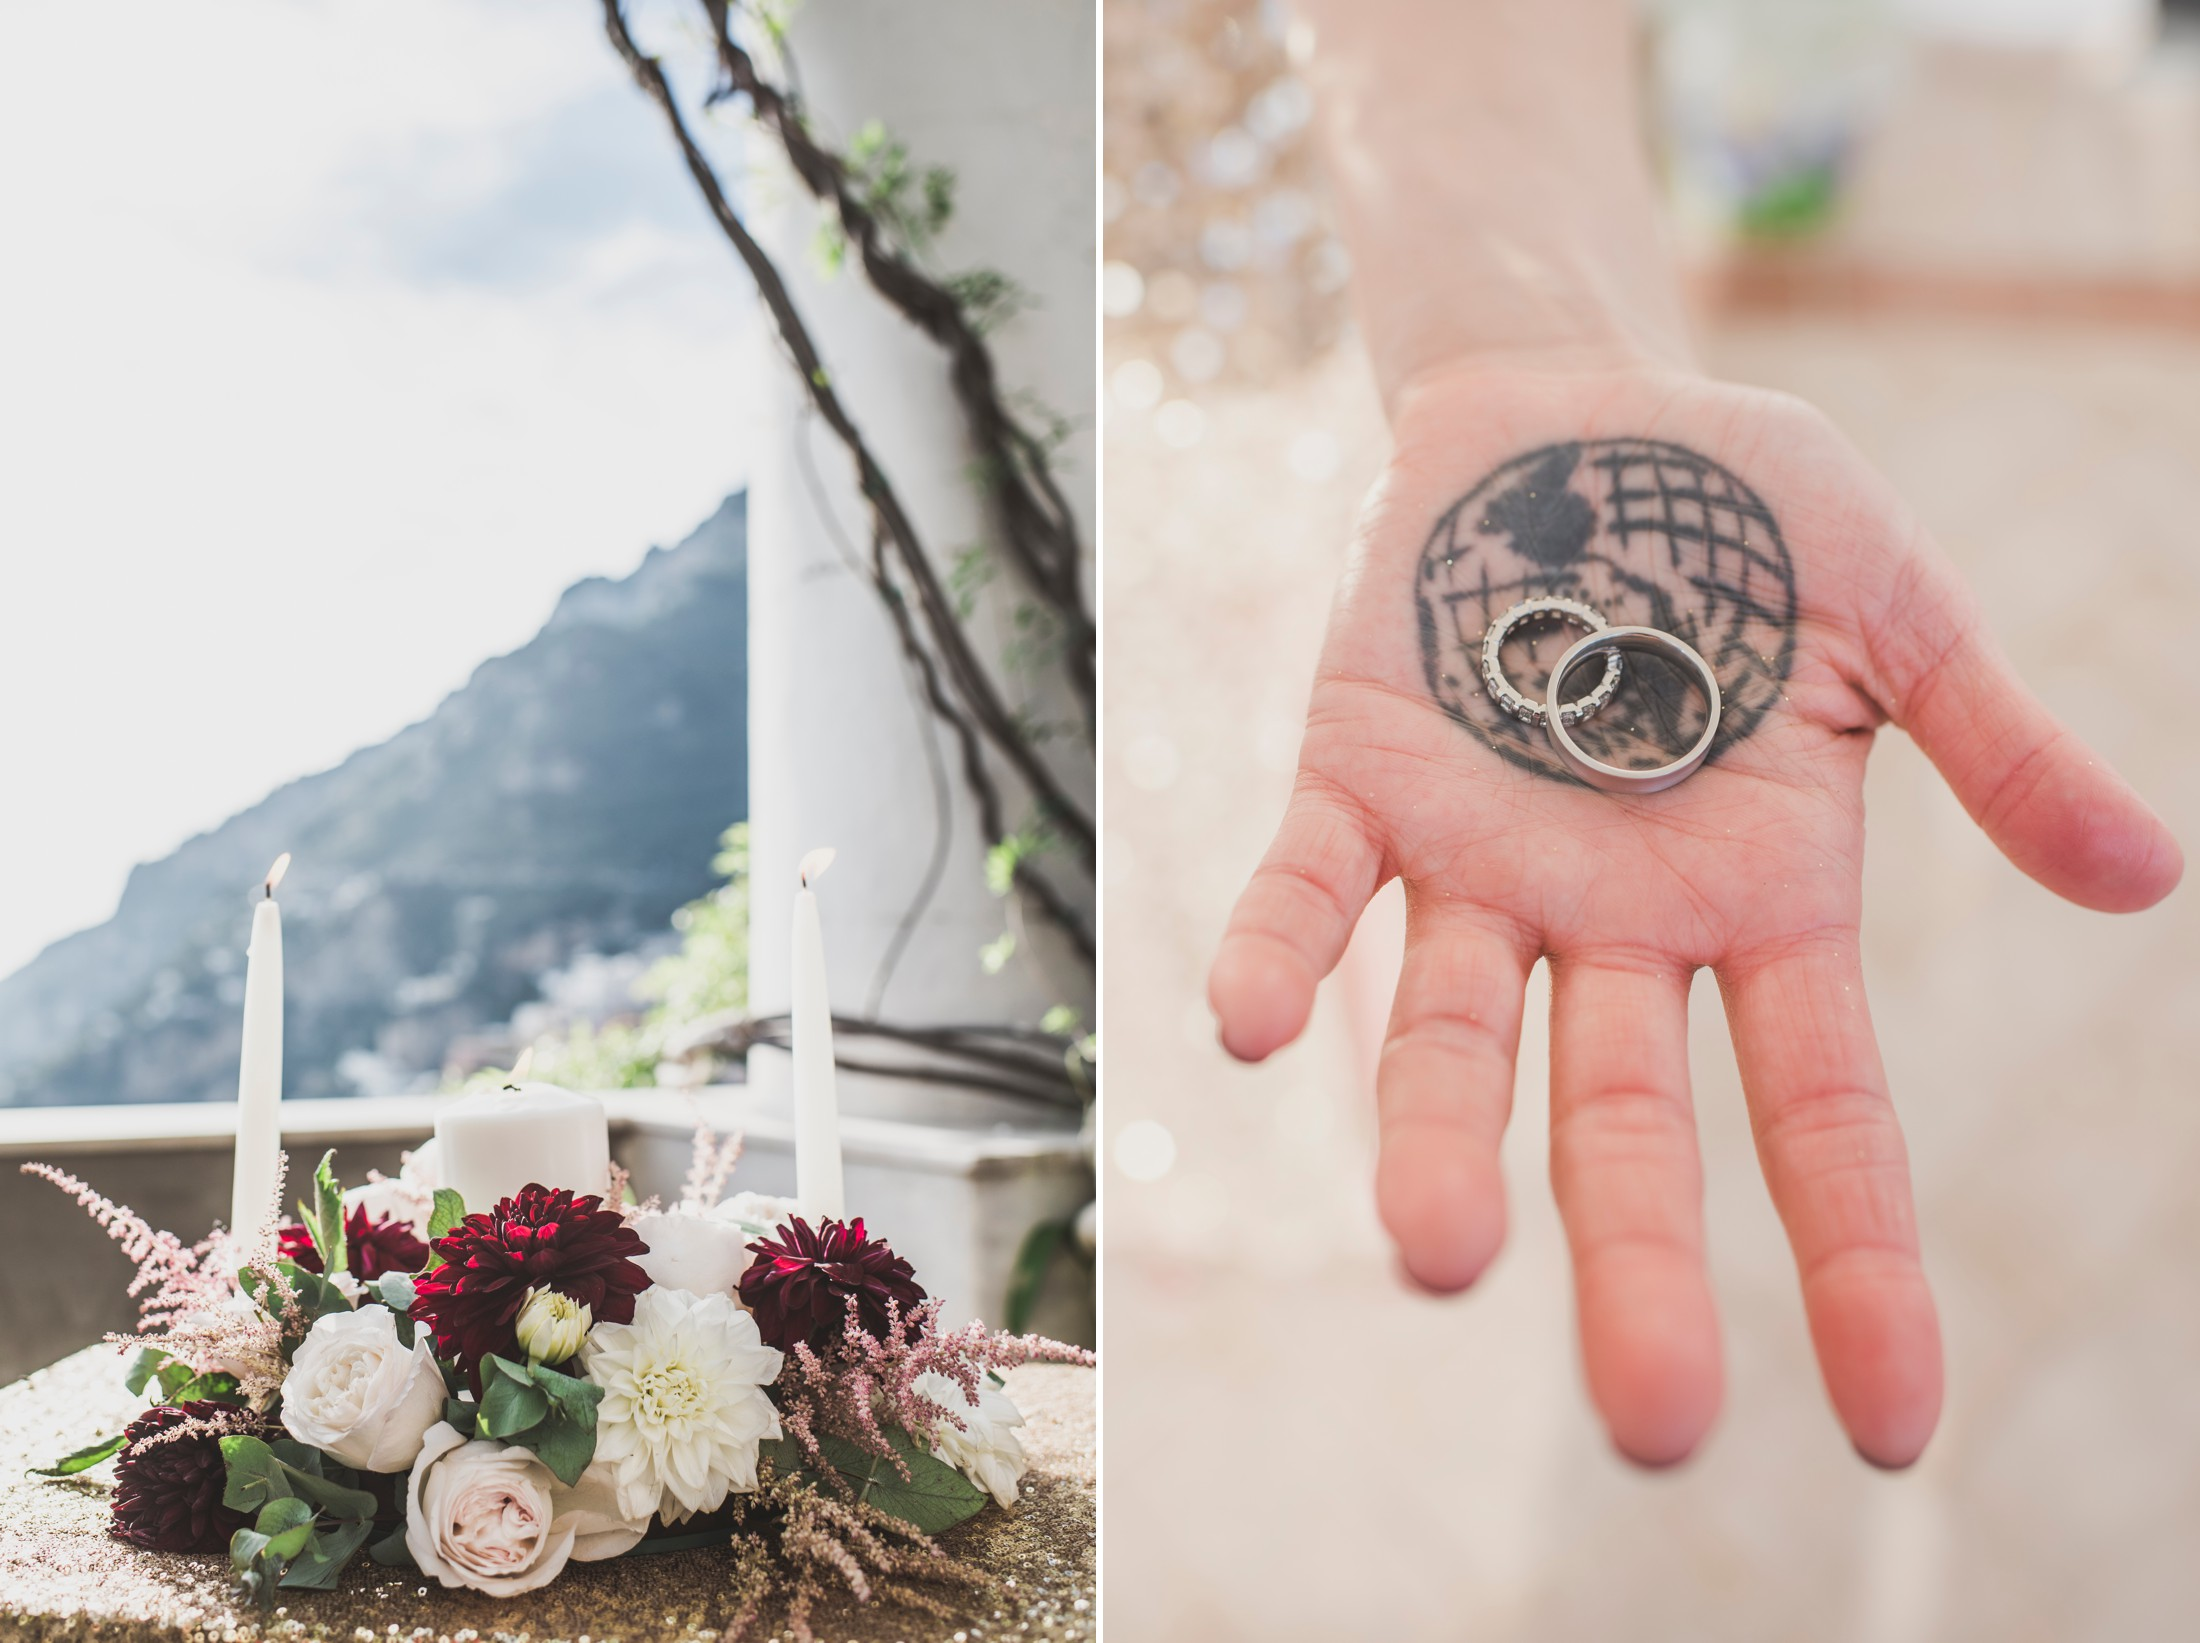 positano wedding collage rings in a woman hand with tattoo of the world wedding bouquet